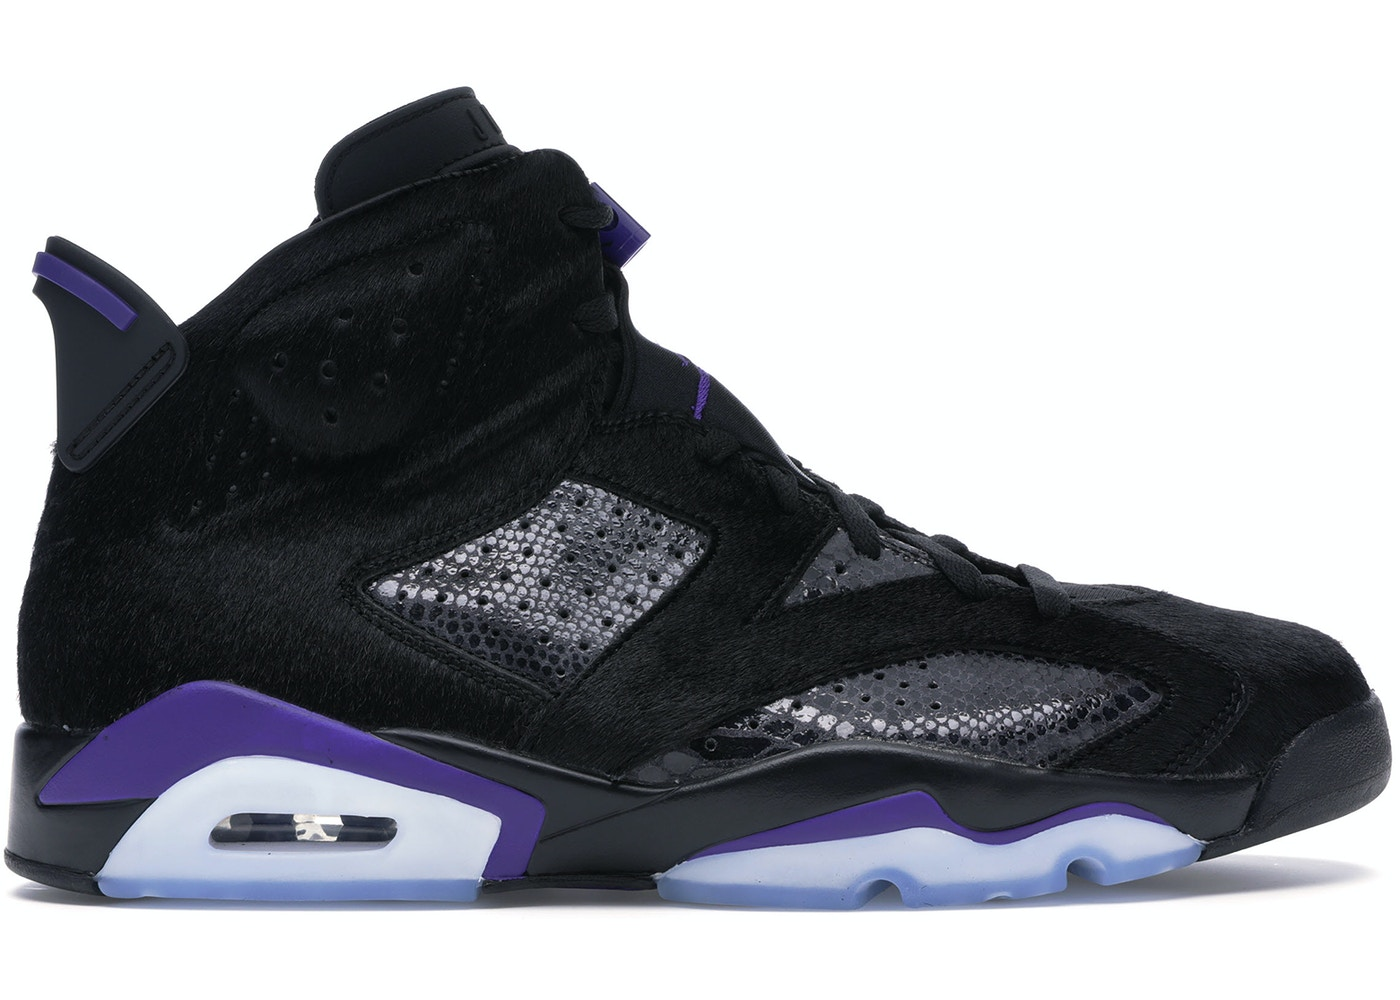 c7edbfb6f16f54 Buy Air Jordan 6 Shoes   Deadstock Sneakers